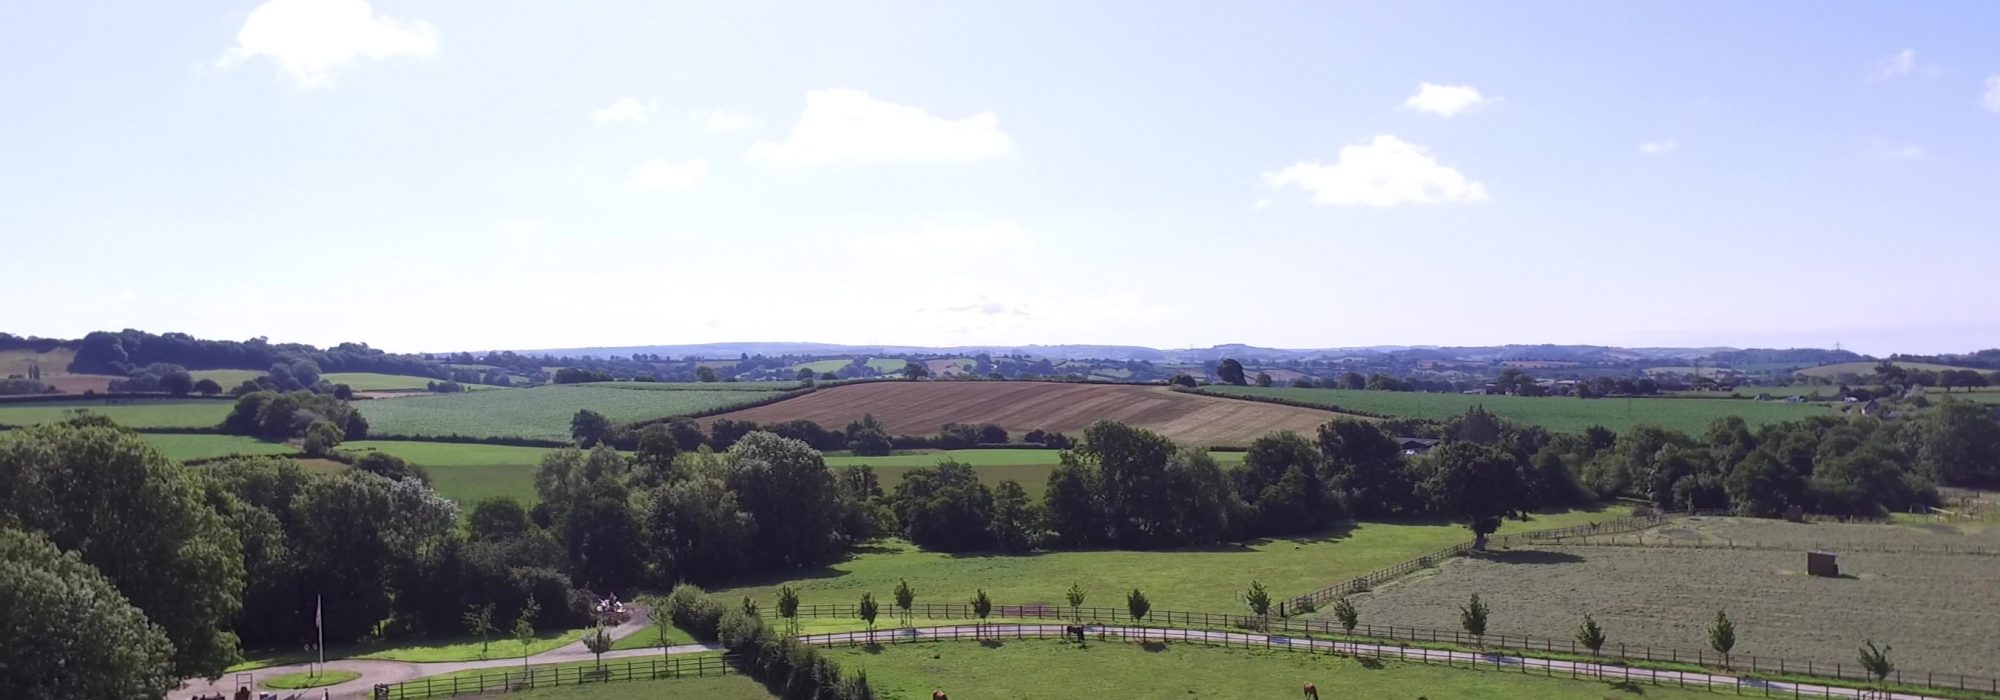 view of the paddocks horses